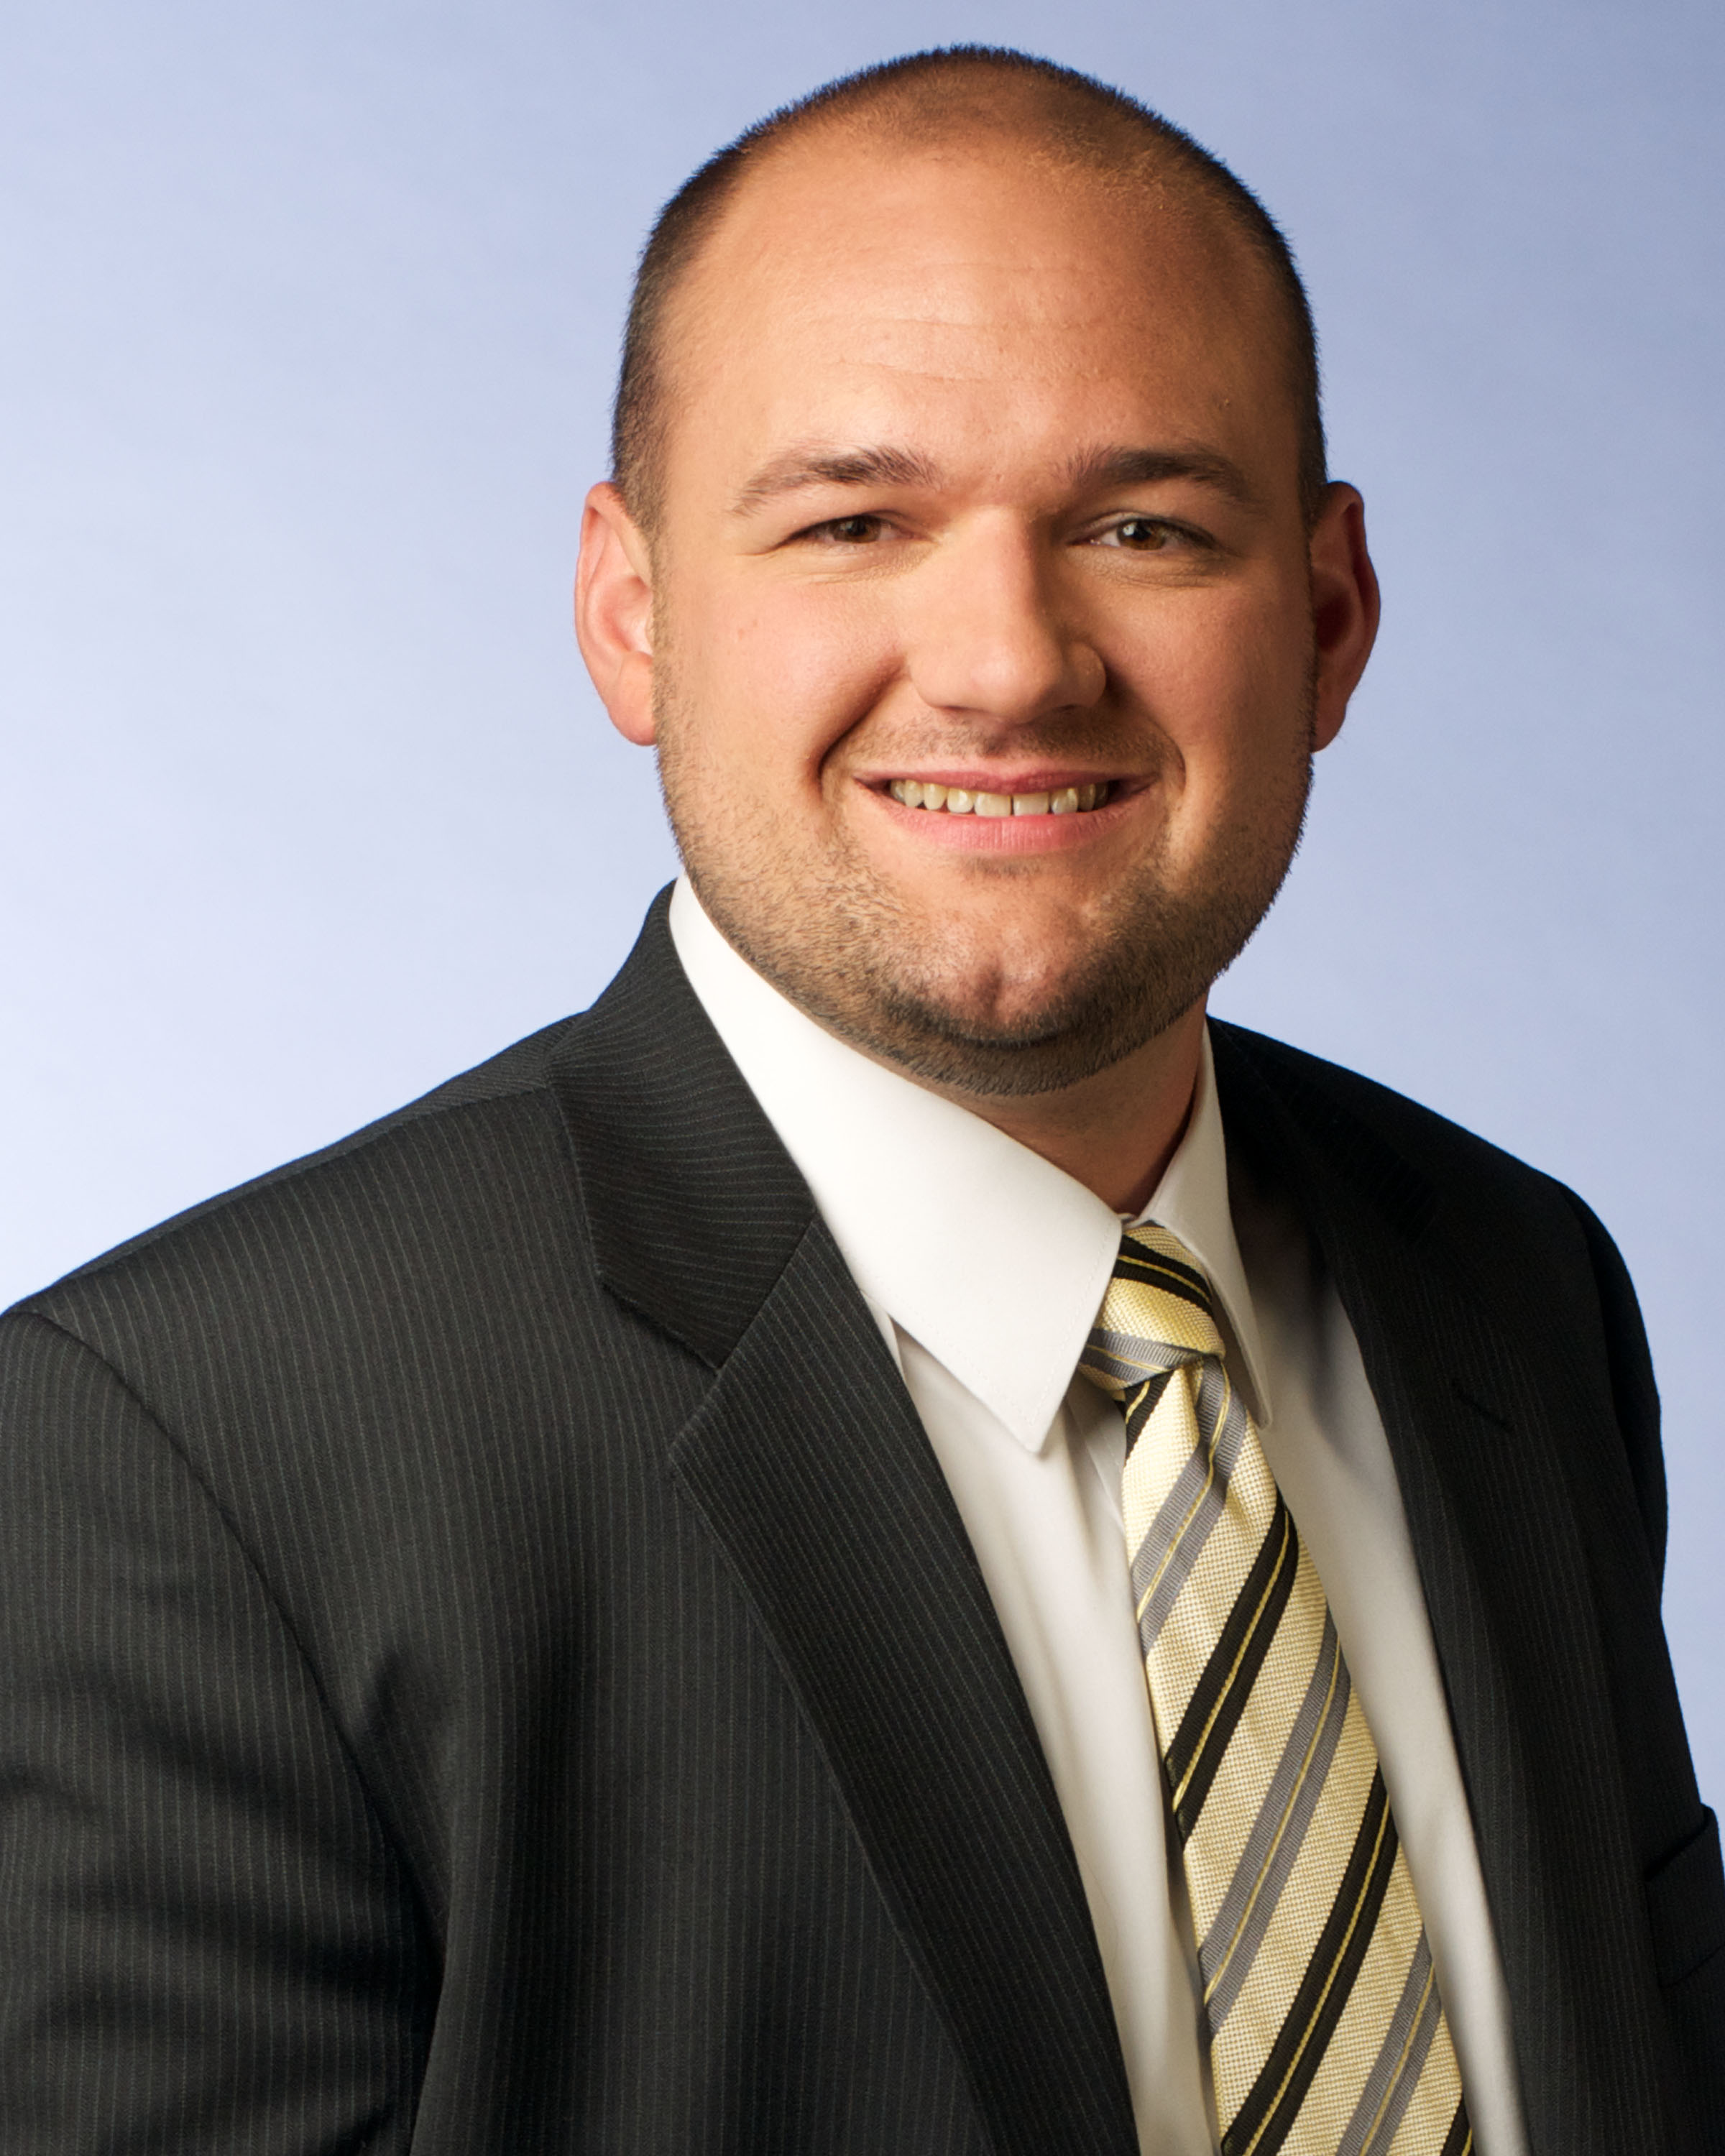 Rodney Bechdoldt | Department of Business Information Systems